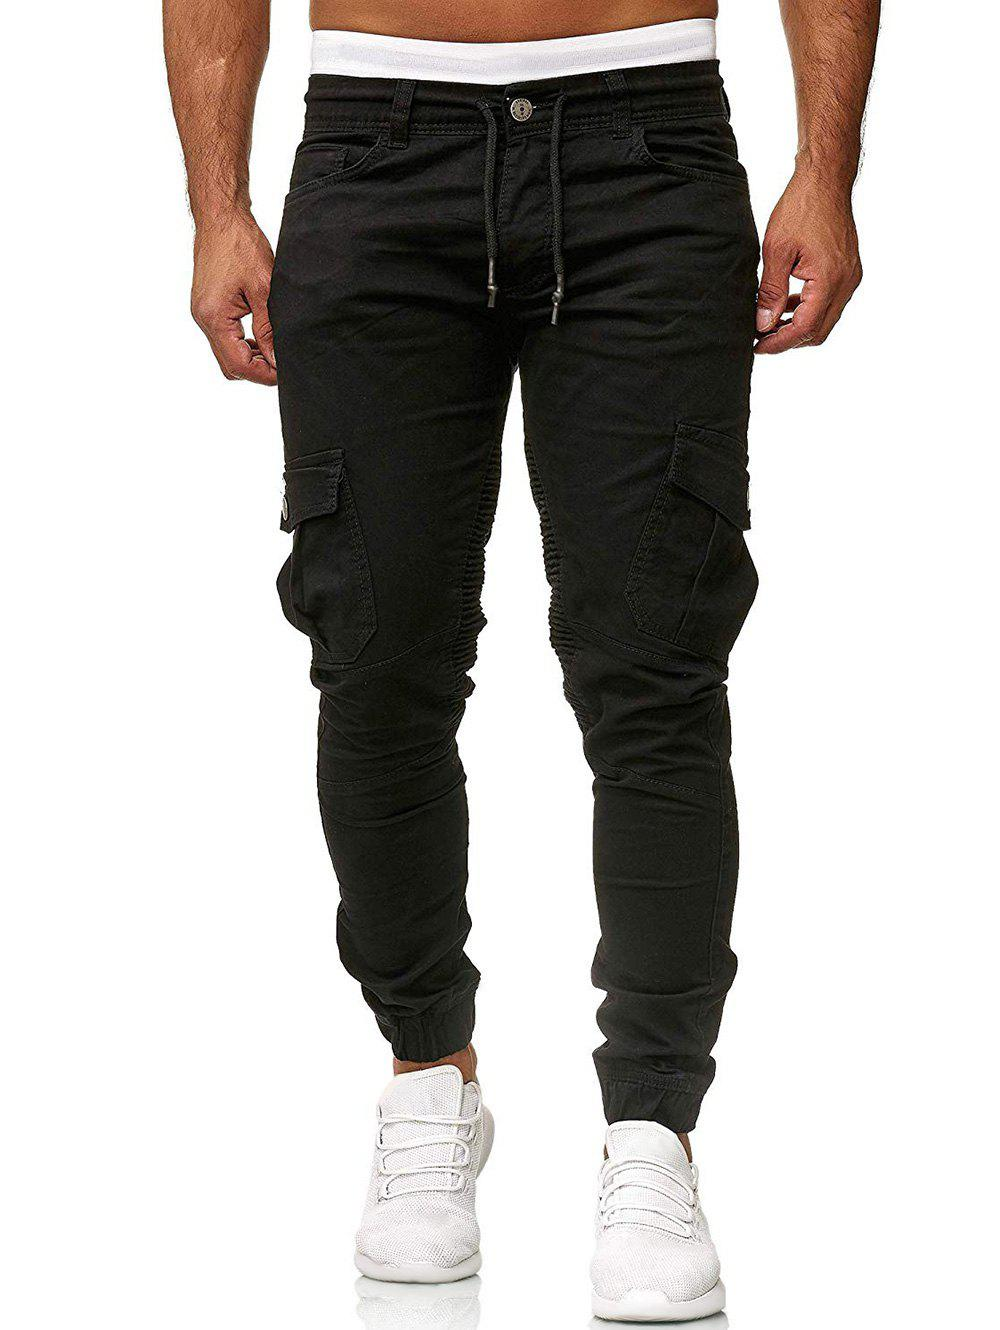 Pleated Trim Drawstring Cargo Jogger Pants - BLACK L